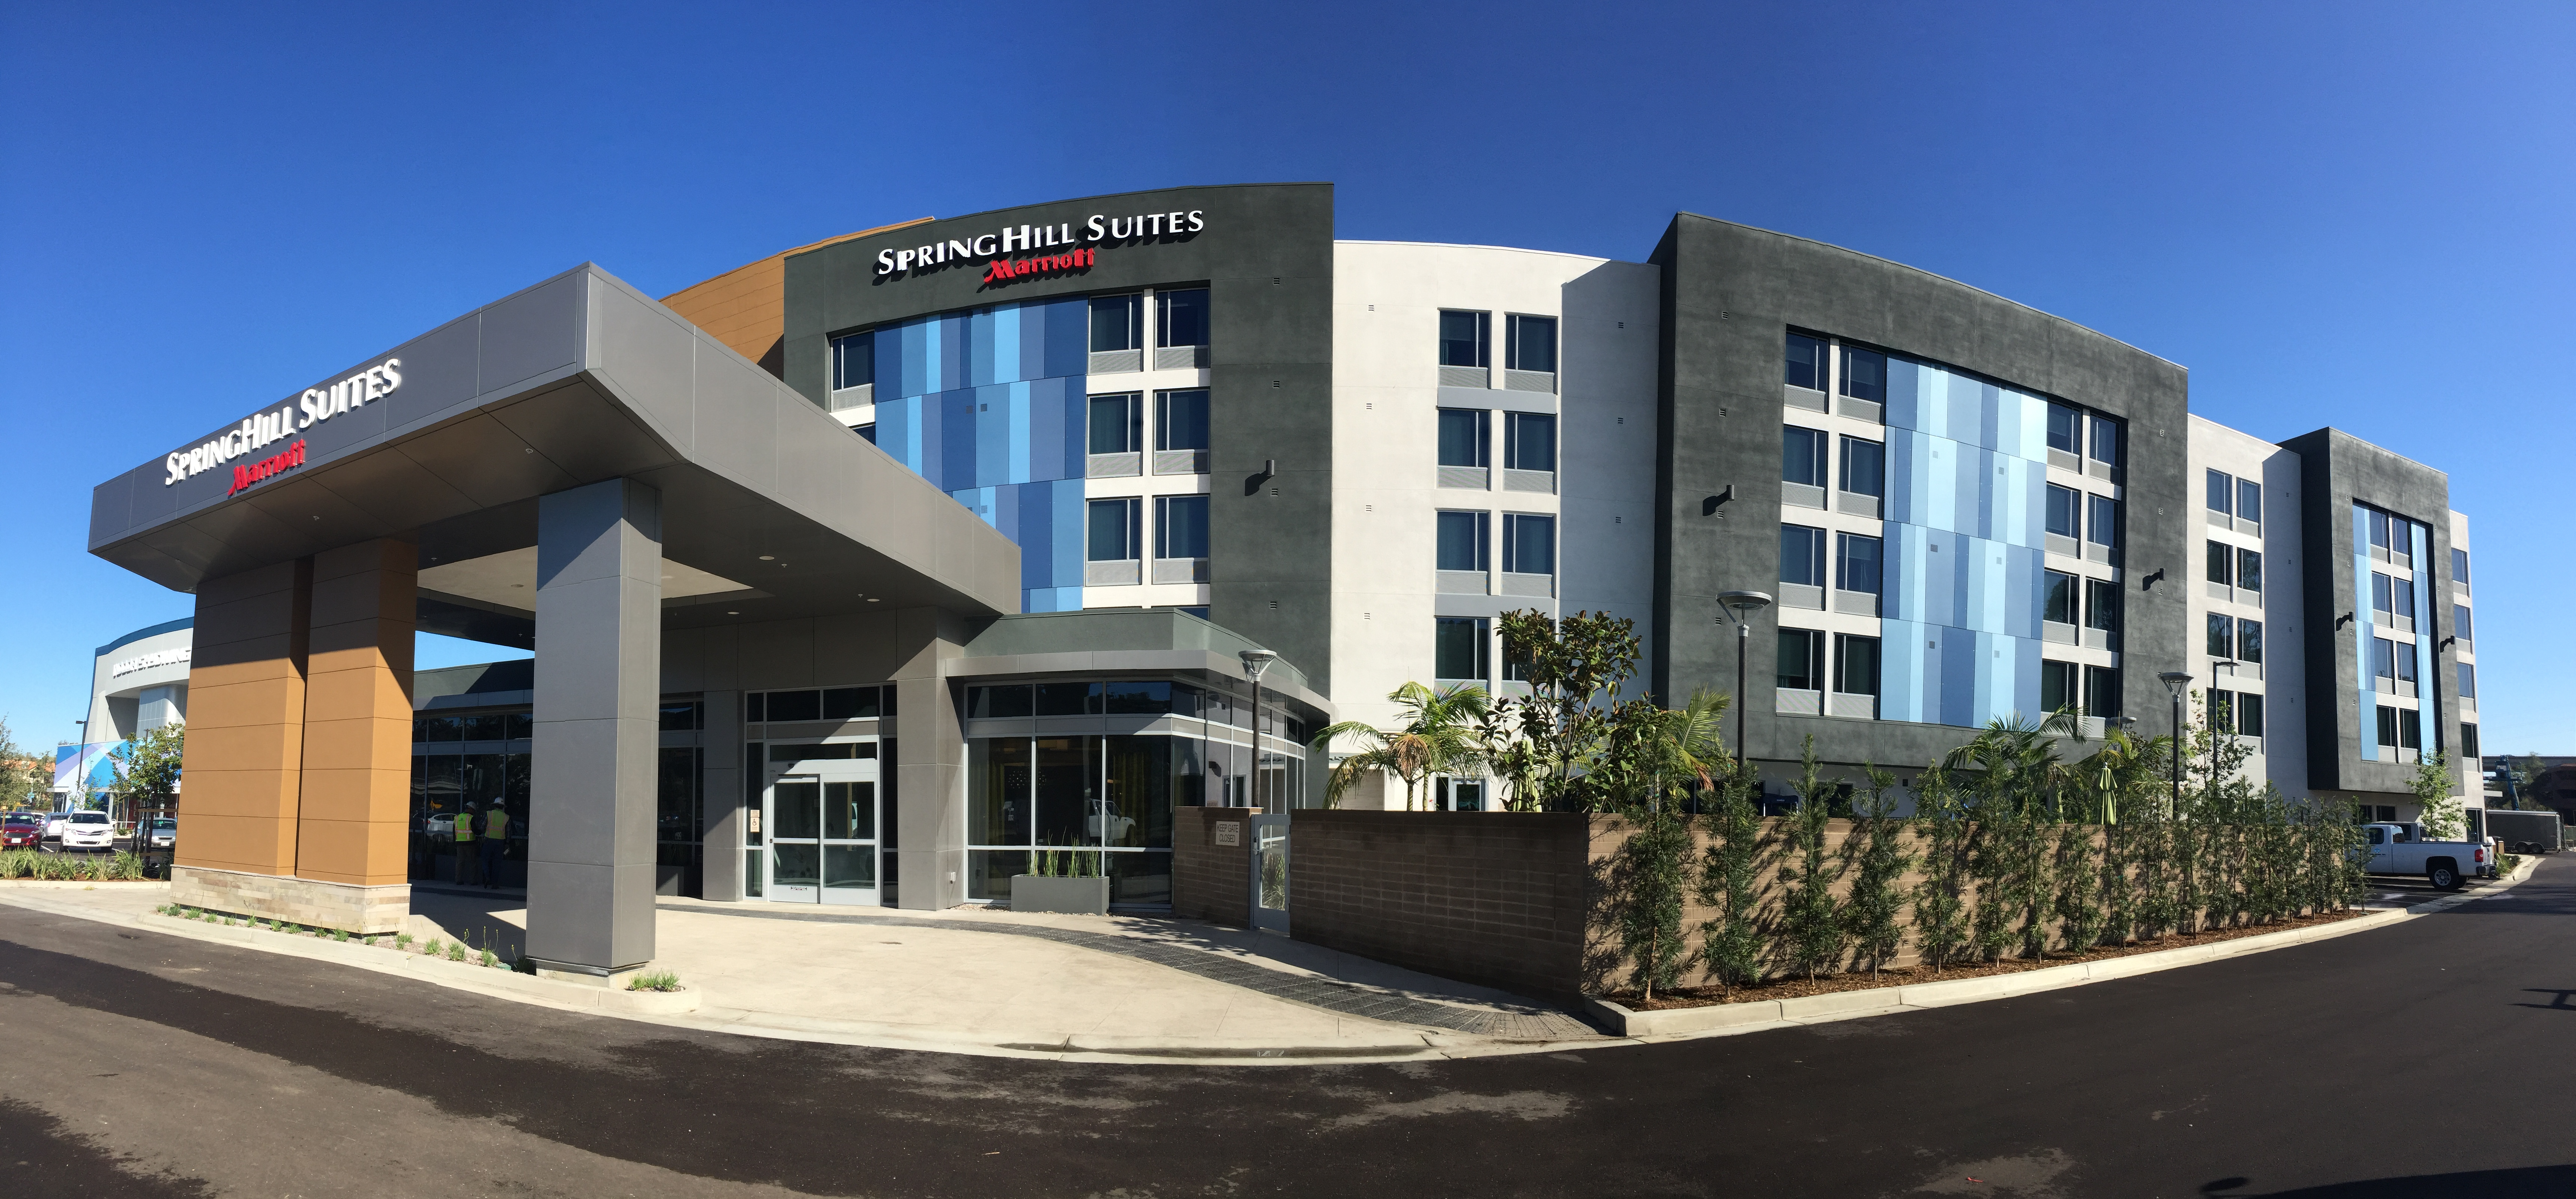 SpringHill Suites Mission Valley, San Diego, CA